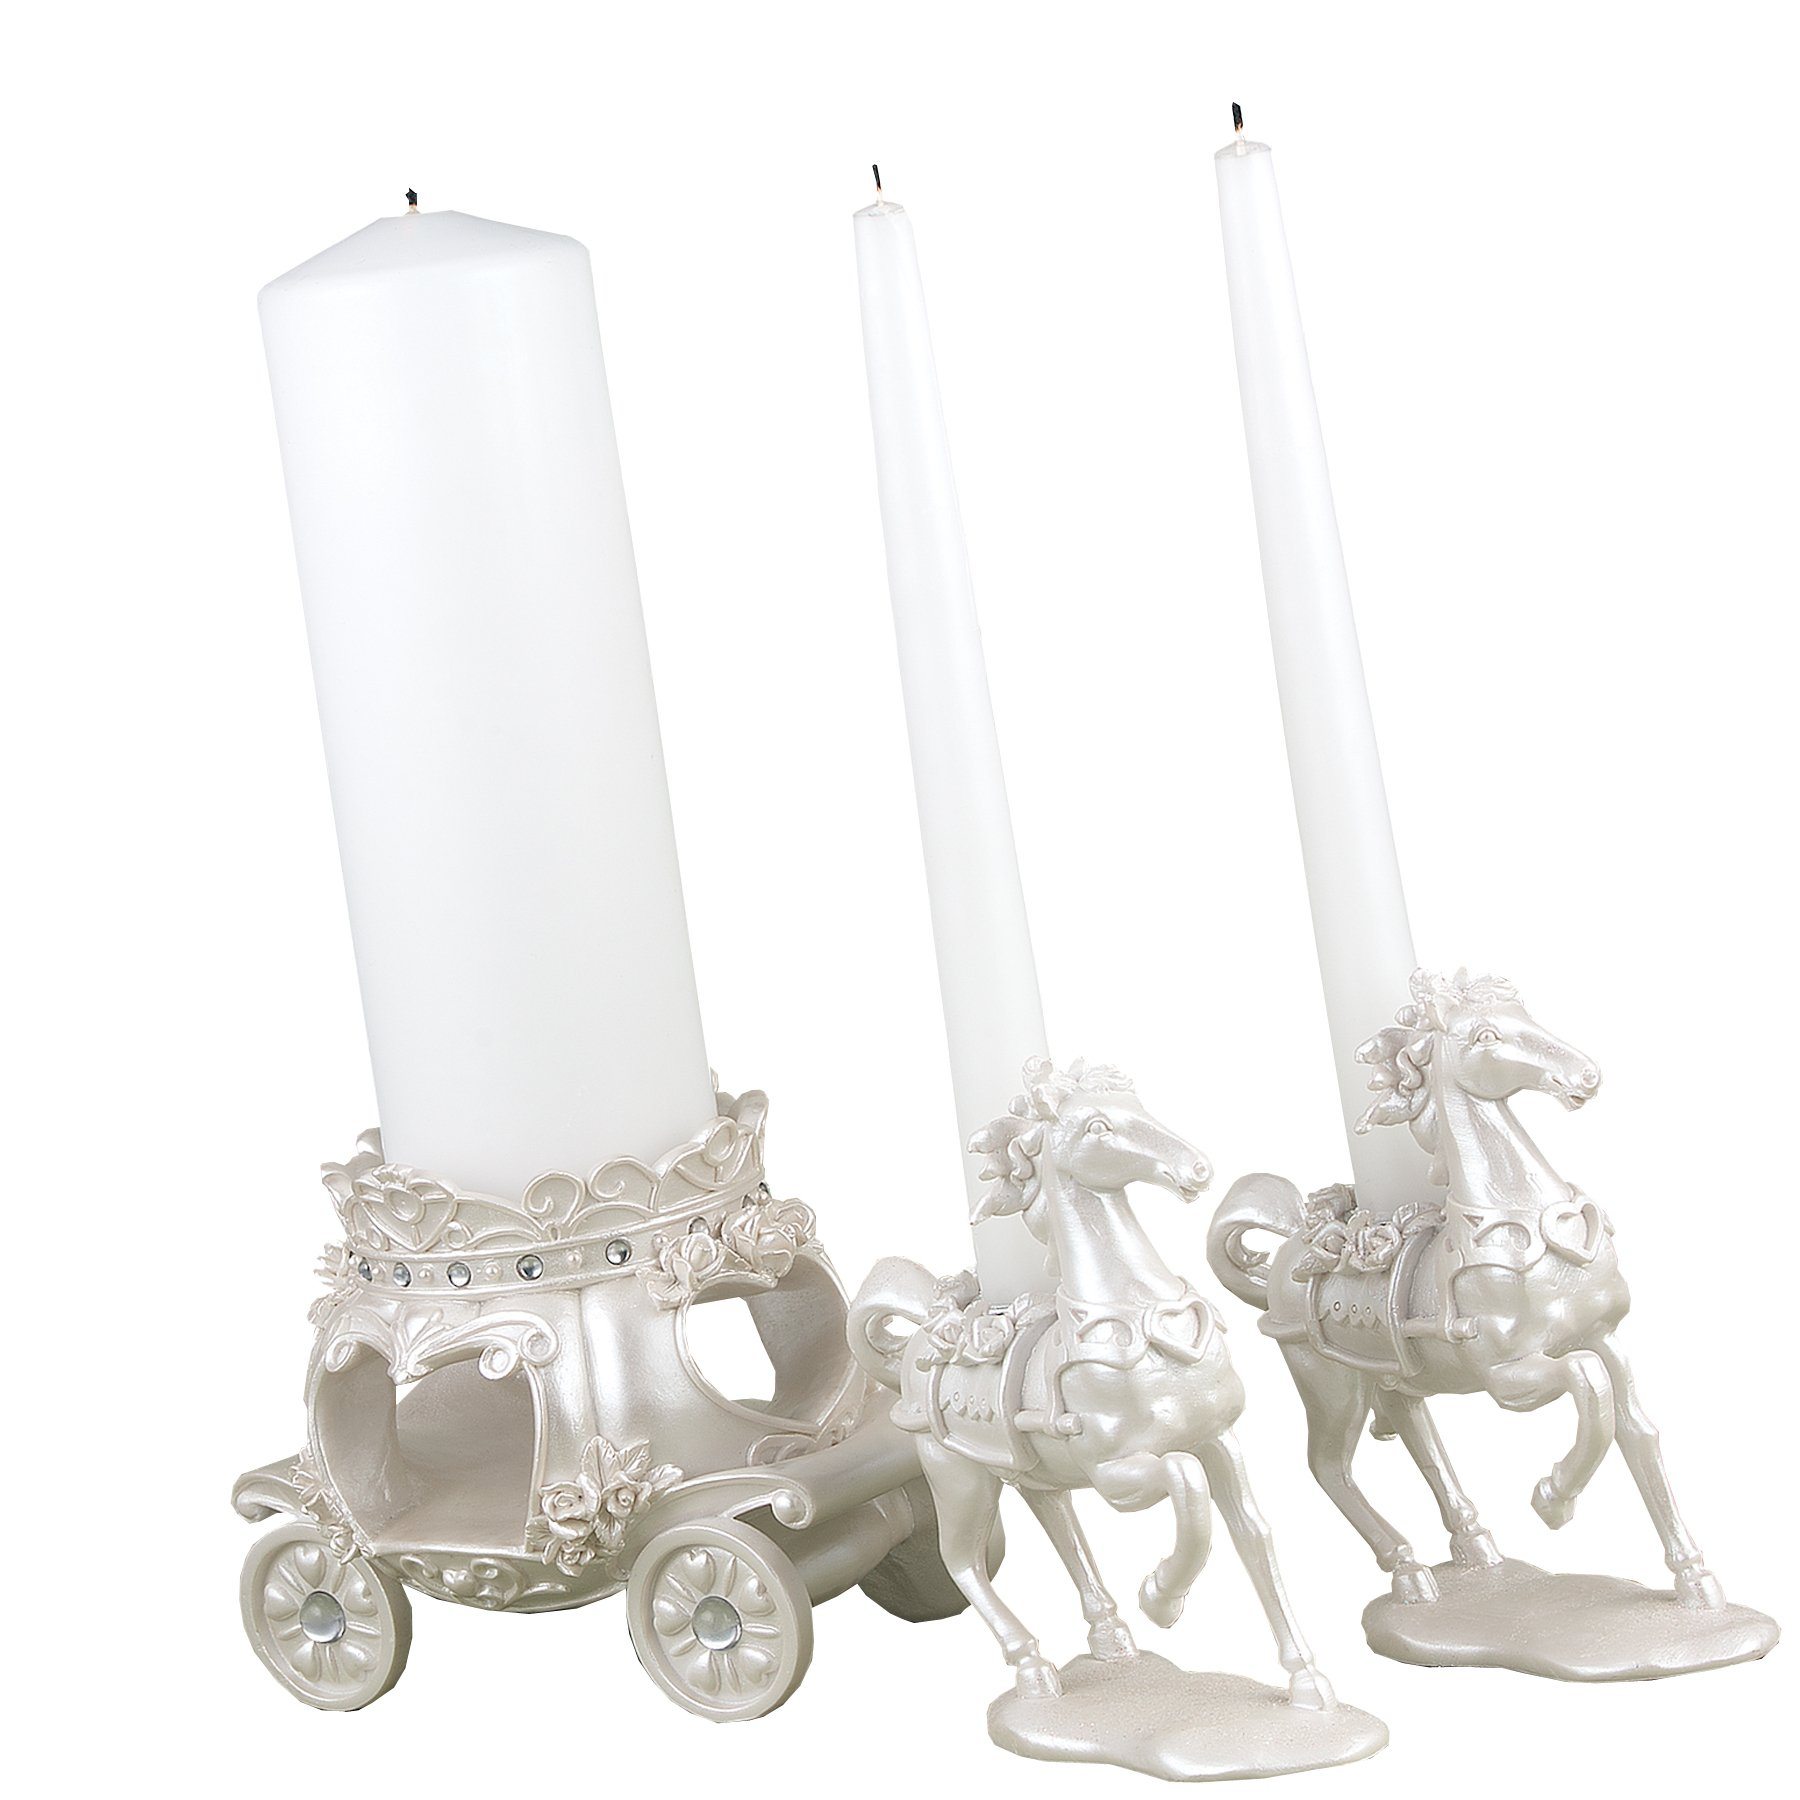 Hortense B. Hewitt Wedding Accessories, Unity Candle Stand, Once Upon a Time, 3 Pieces by Hortense B. Hewitt